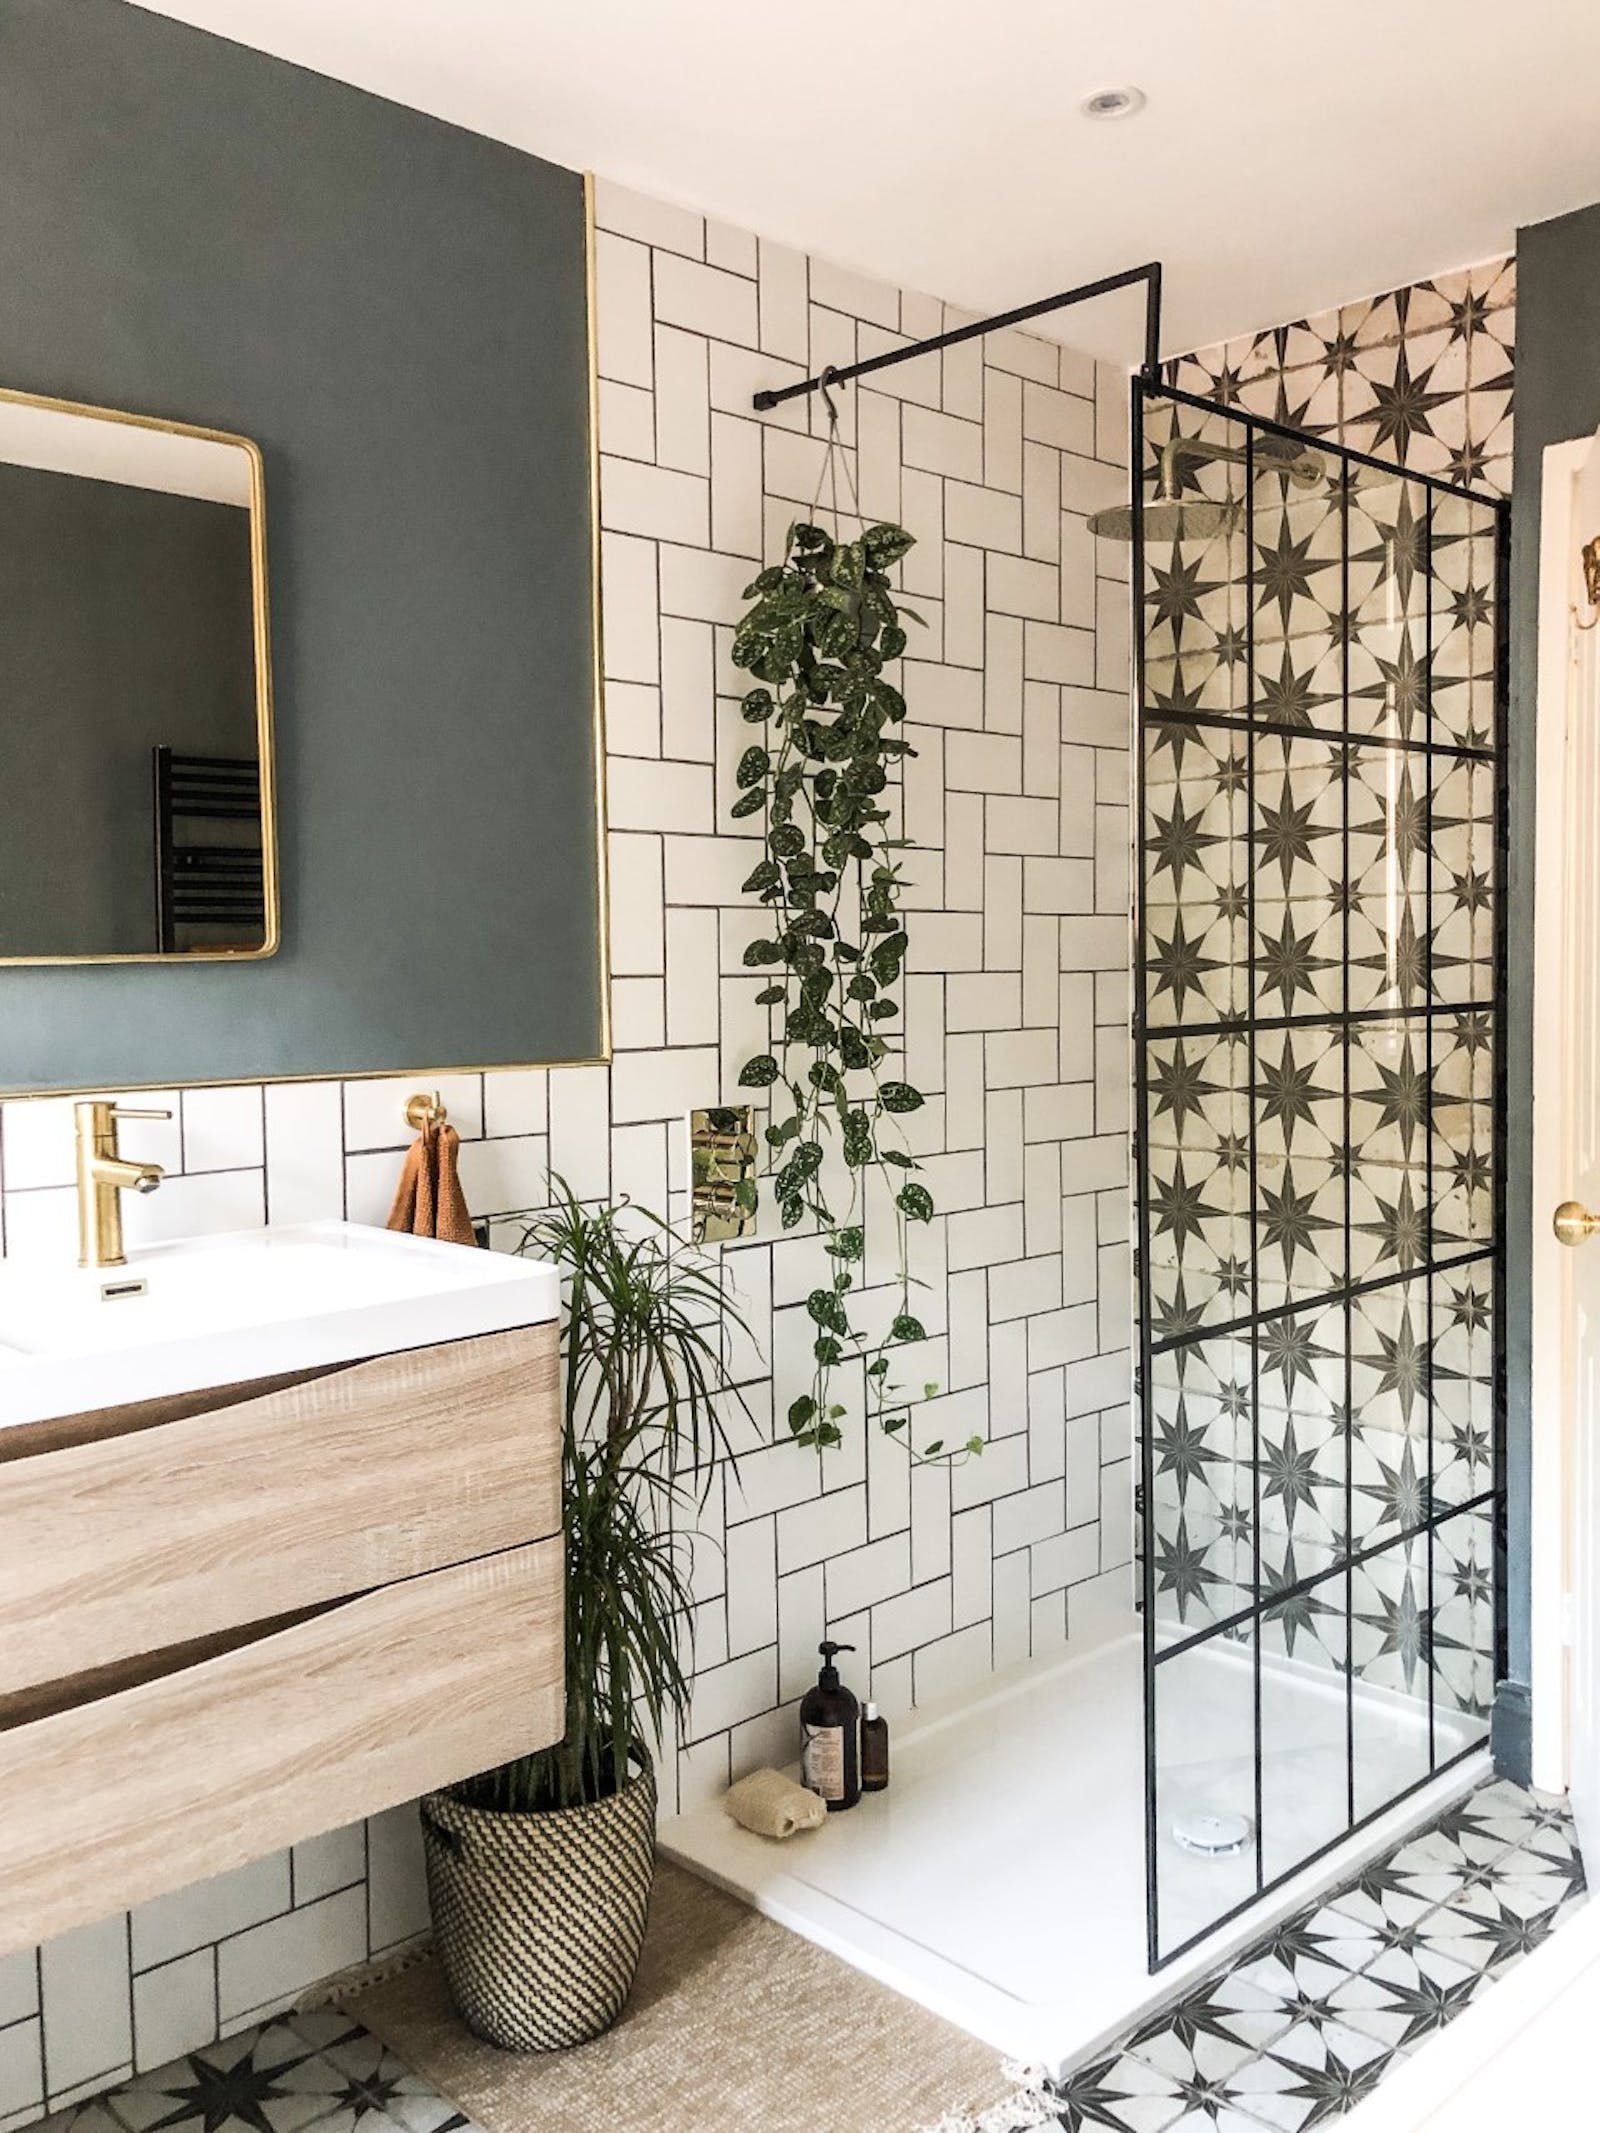 Bathroom with white tiles and a teal-painted wall behind the mirror